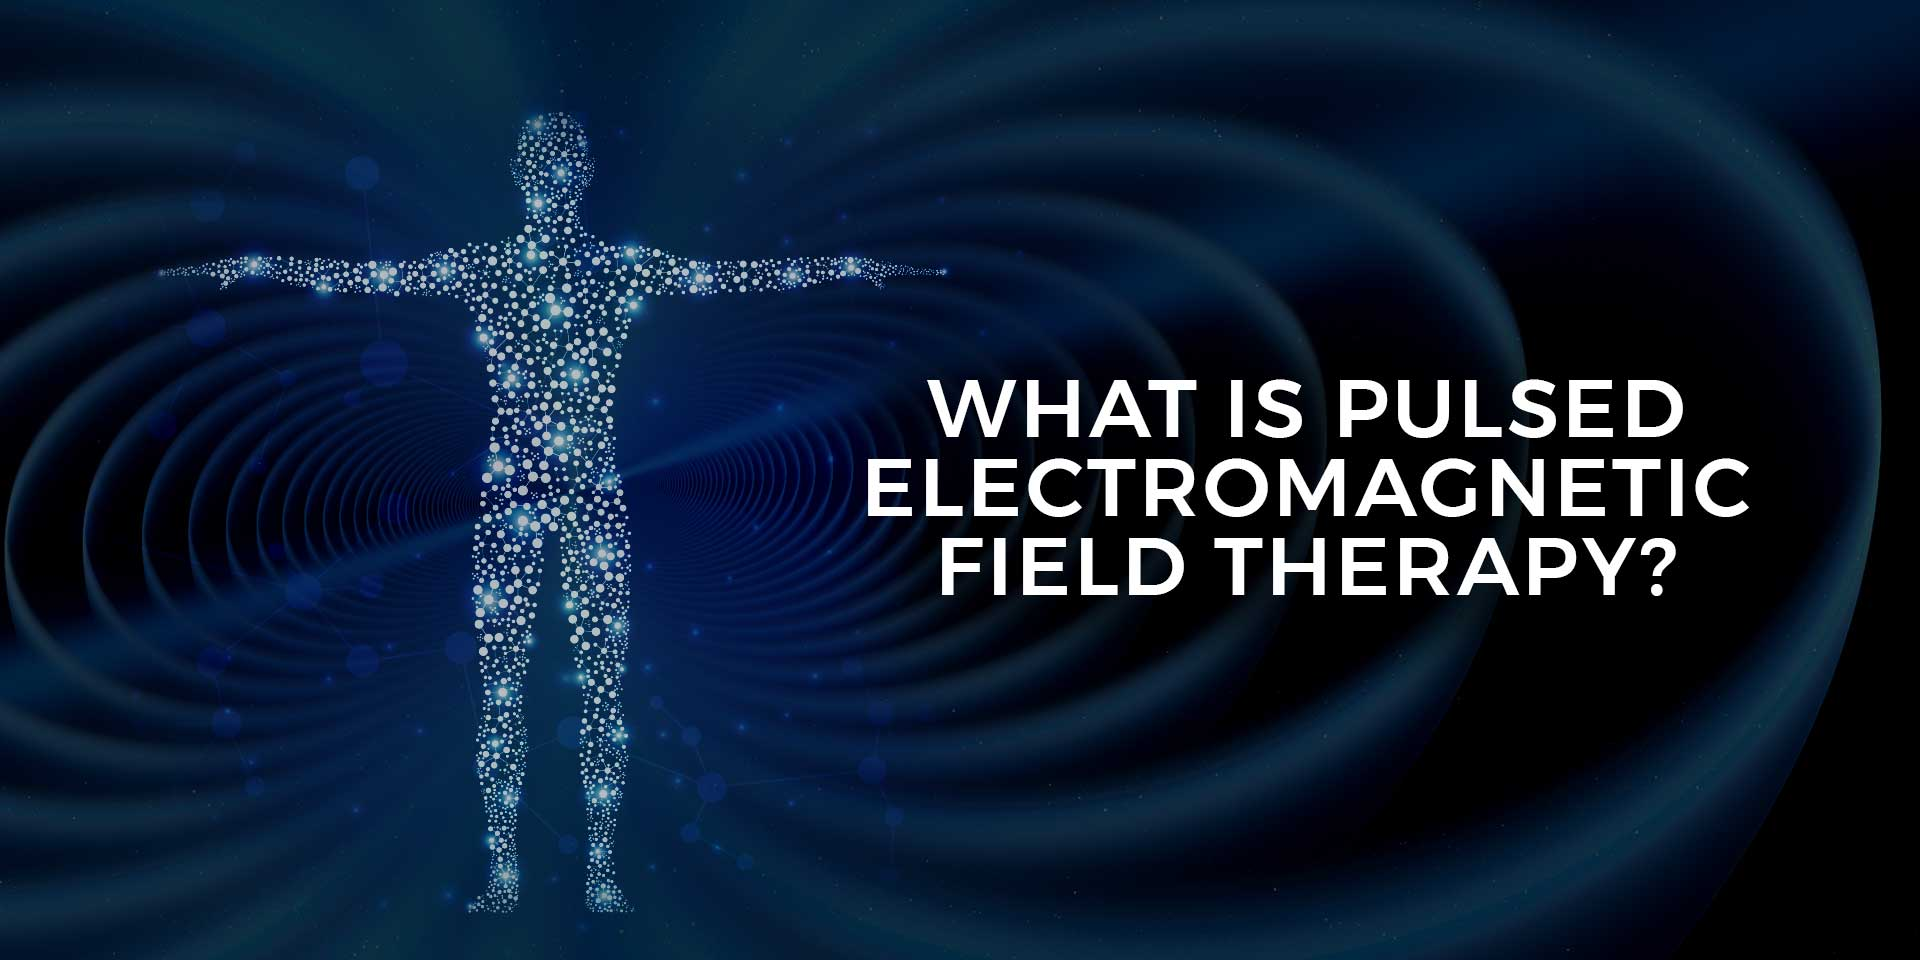 What is Pulsed Electromagnetic Field Therapy?